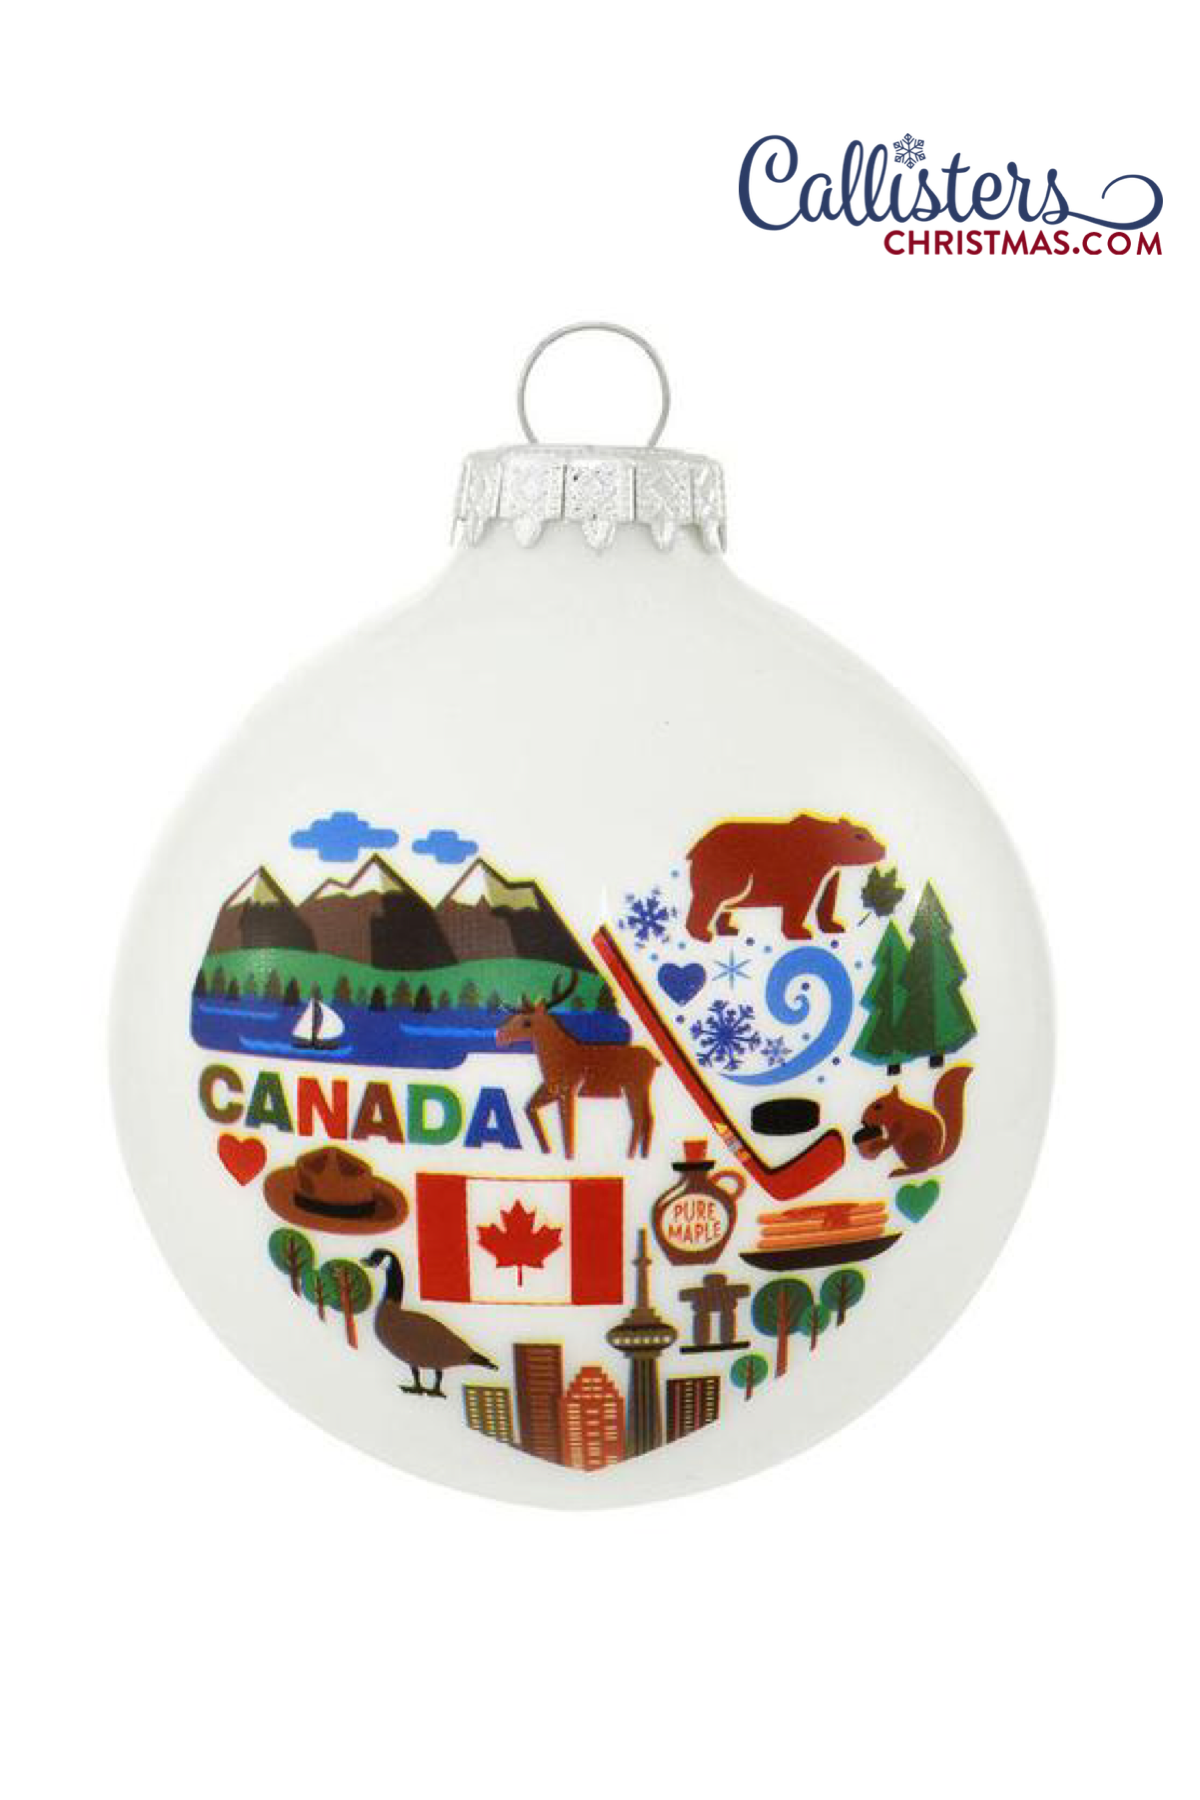 Canada Ornament Old World Christmas Ornaments Personalized Christmas Ornaments Glass Christmas Balls